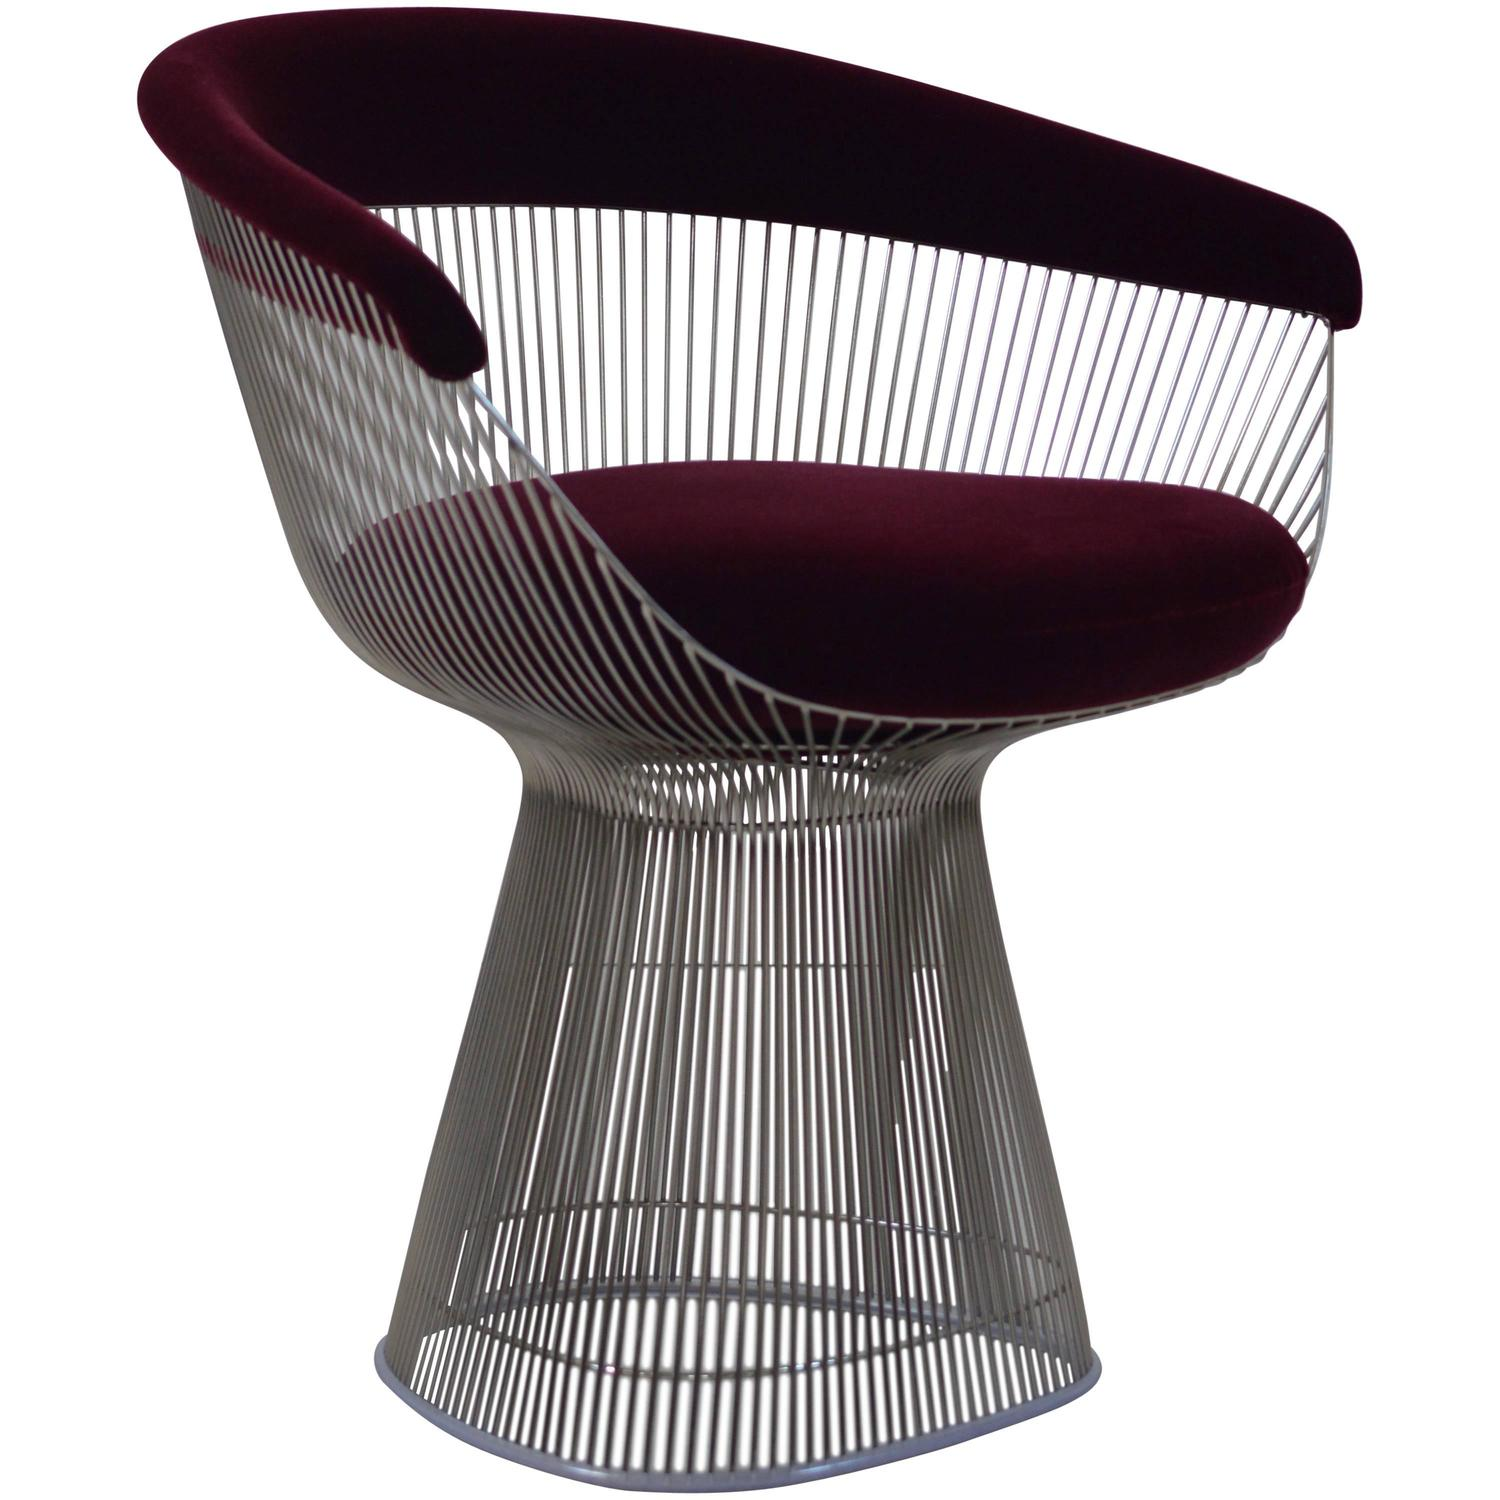 Terrific Burgundy Velvet Warren Platner Wire Chair For Knoll At 1Stdibs Gamerscity Chair Design For Home Gamerscityorg